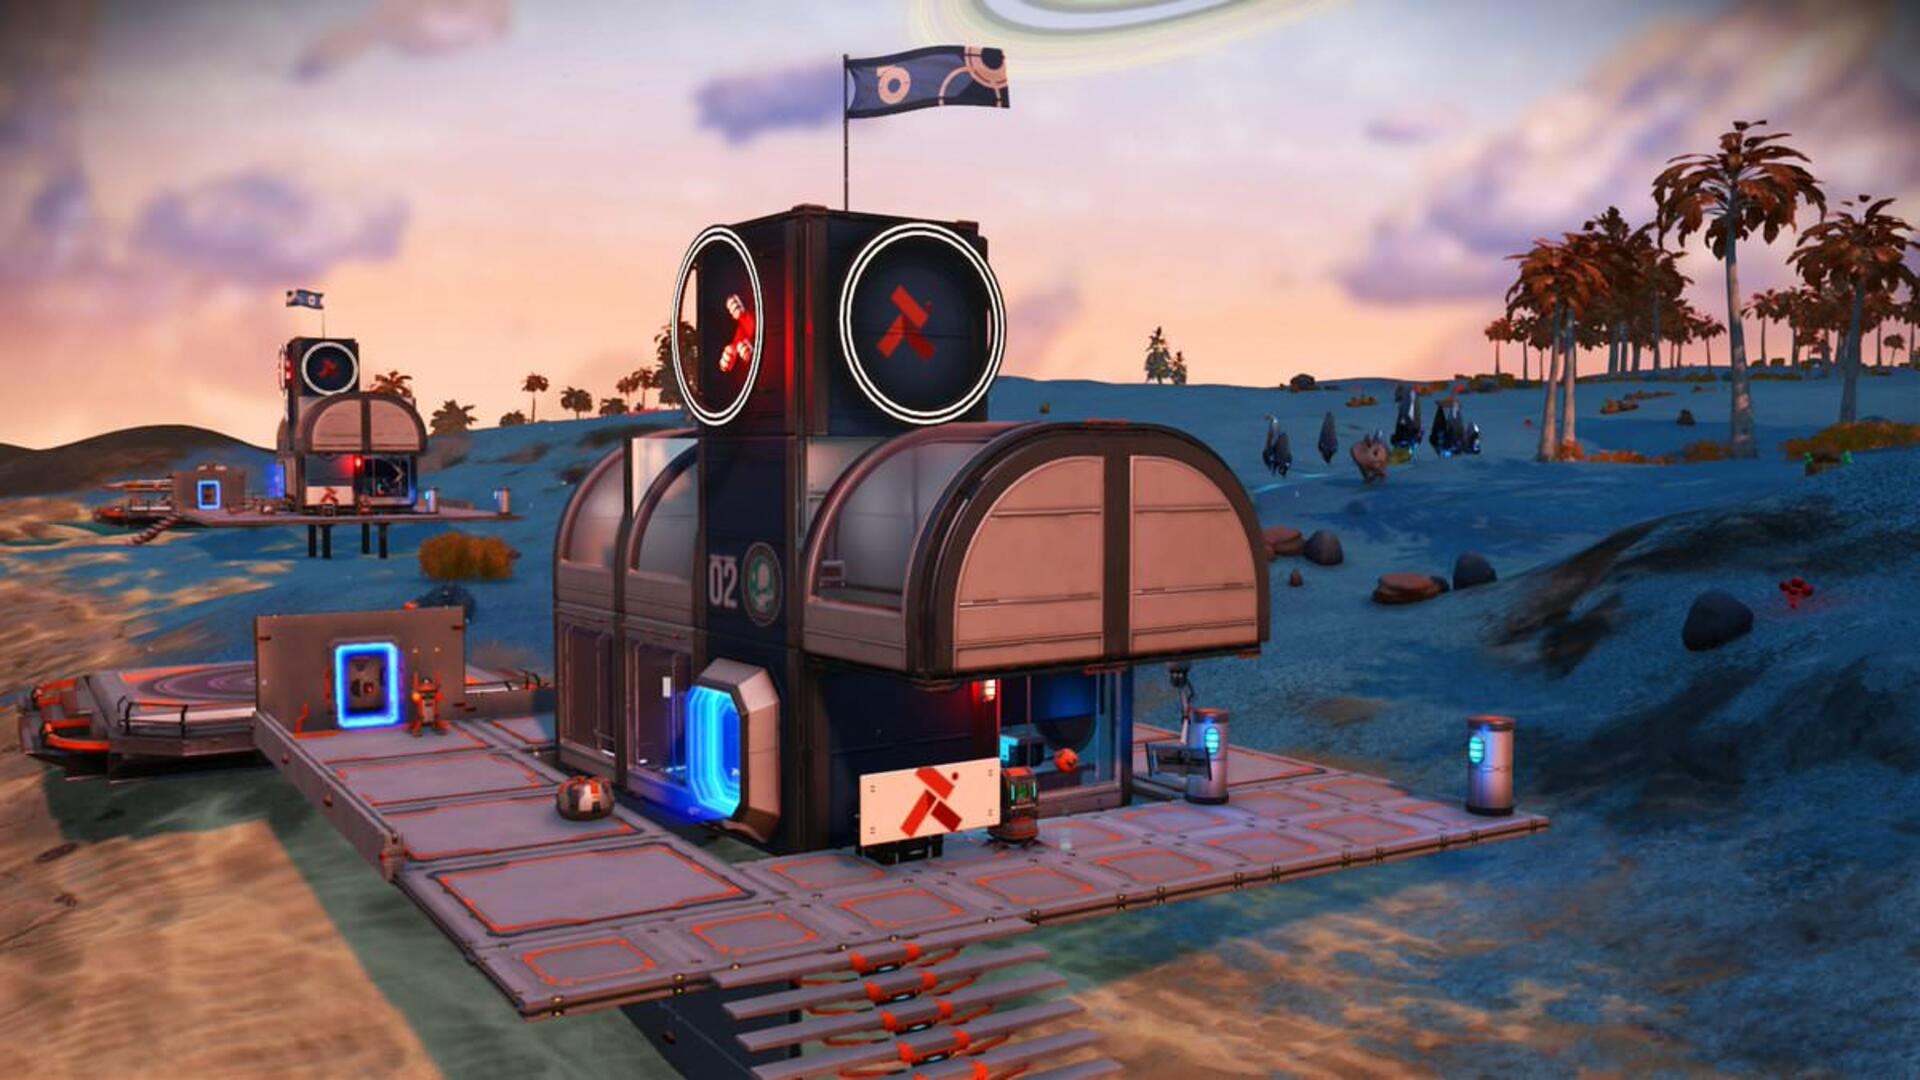 Meet the No Man's Sky Chefs Who are Running Restaurants at the End of the Universe